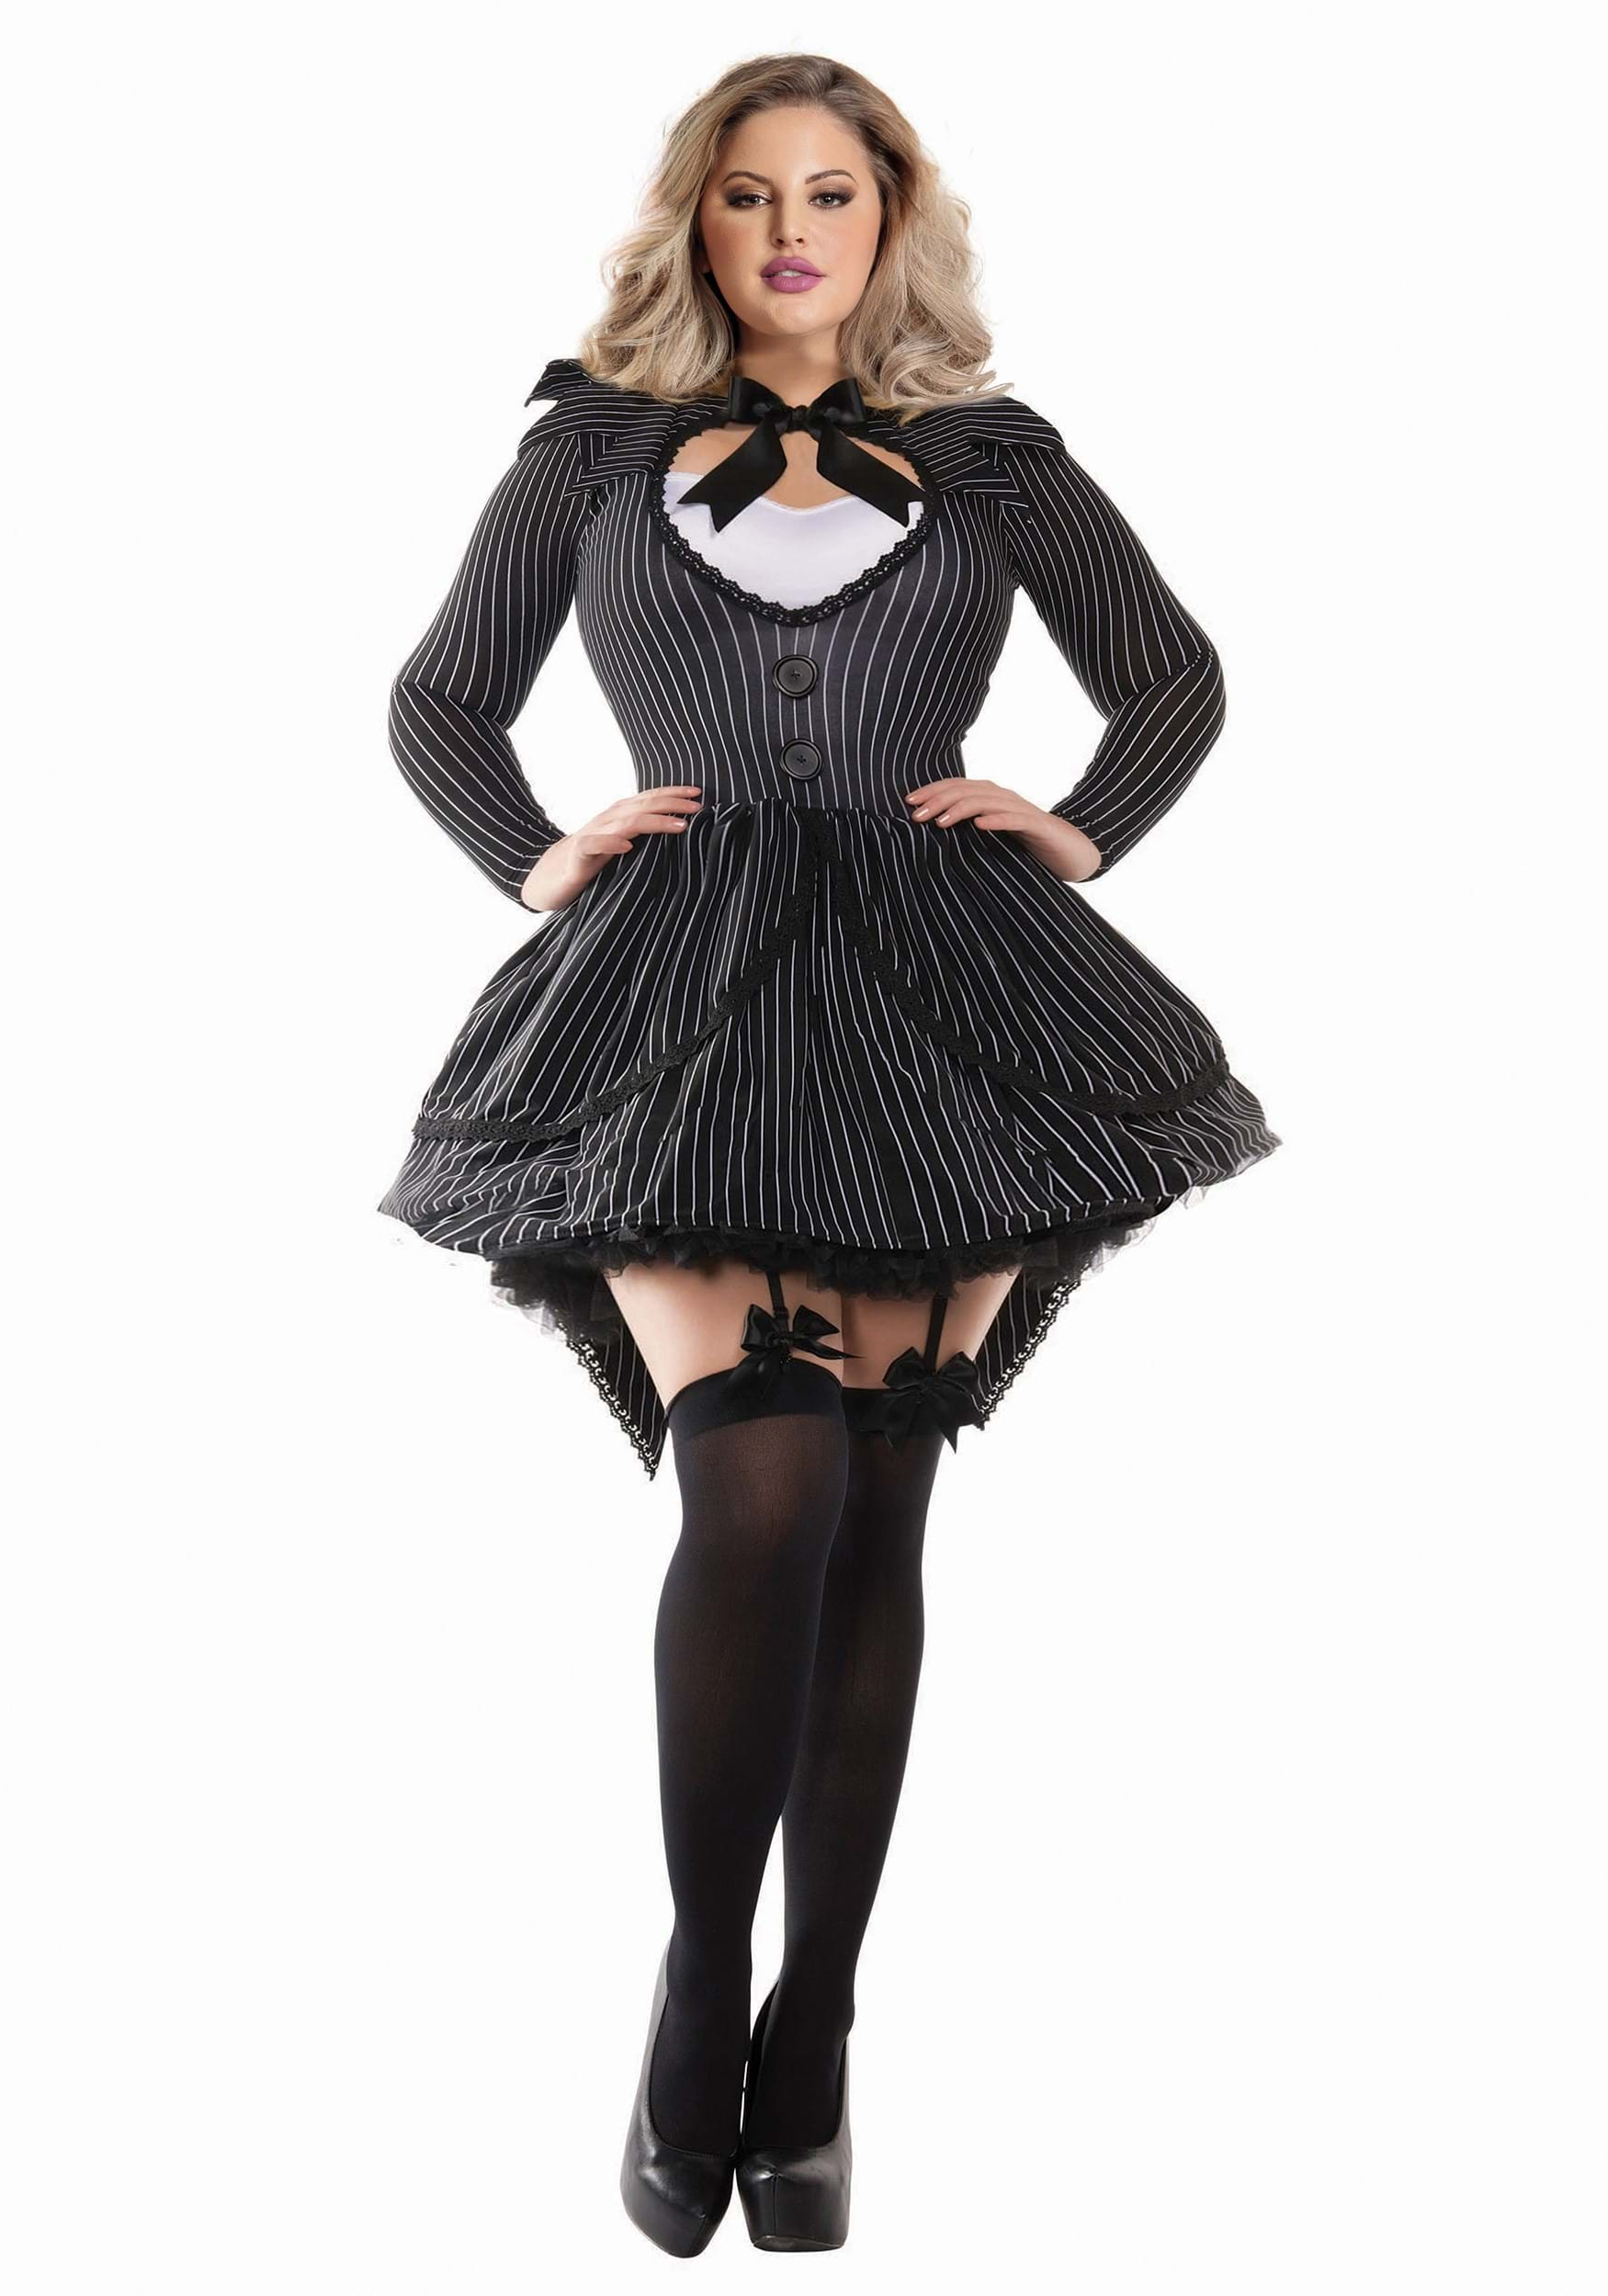 Plus Size Bad Dreams Costume